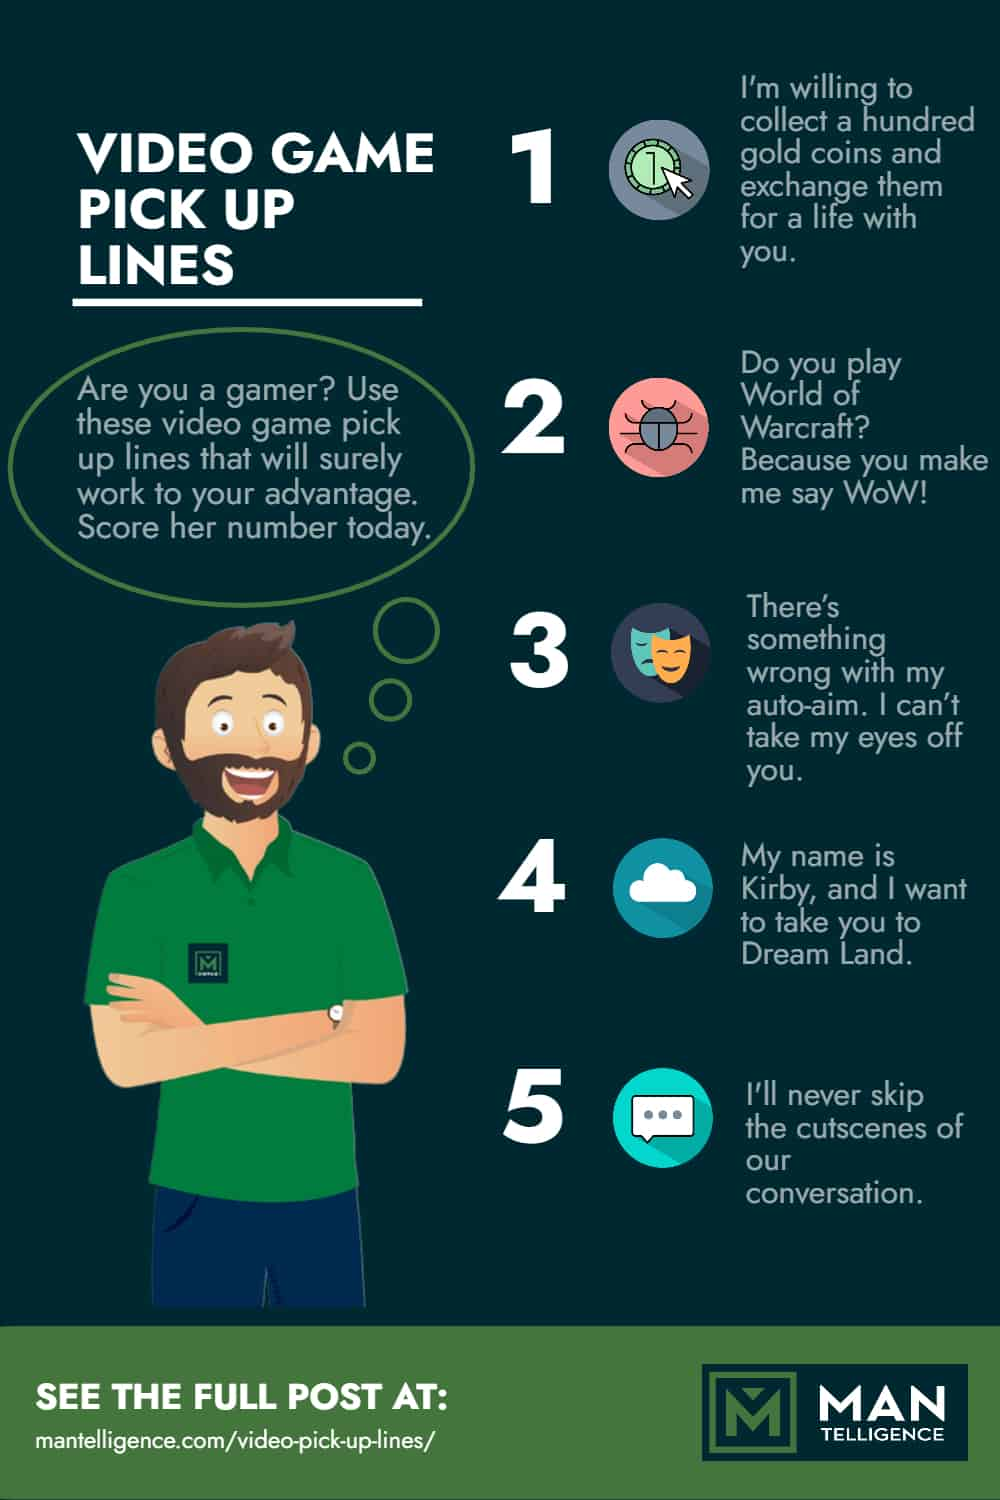 video game pick up lines - infographic